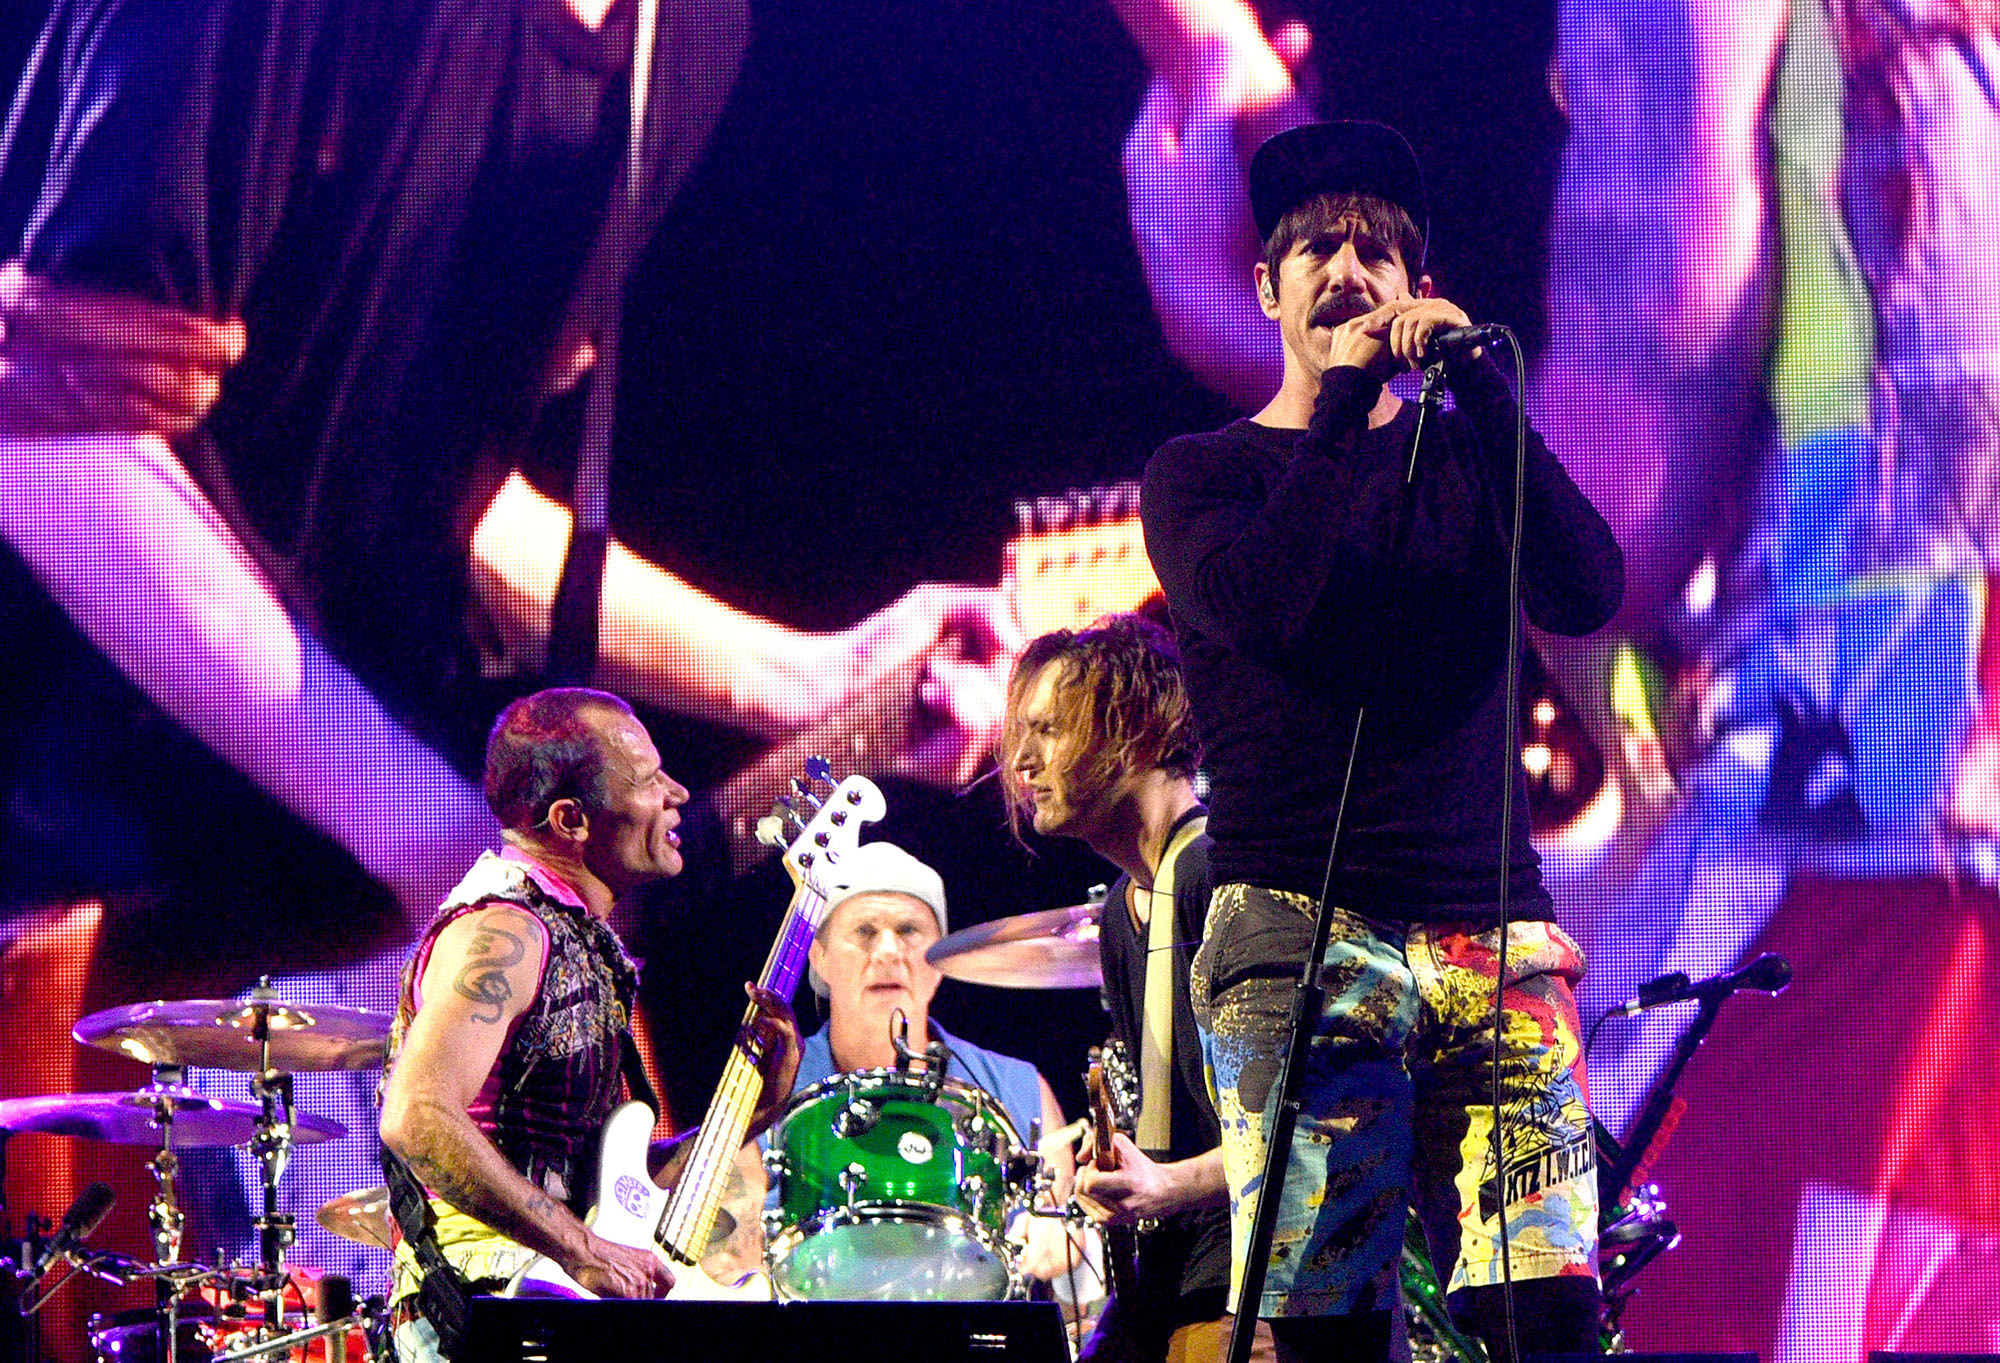 Anthony Kiedis, Flea, Chad Smith and Josh Klinghoffer of the Red Hot Chili Peppers perform during the 2016 Festival D'ete De Quebec on July 16, 2016 in Quebec City, Canada.  (Photo by C Flanigan/WireImage)